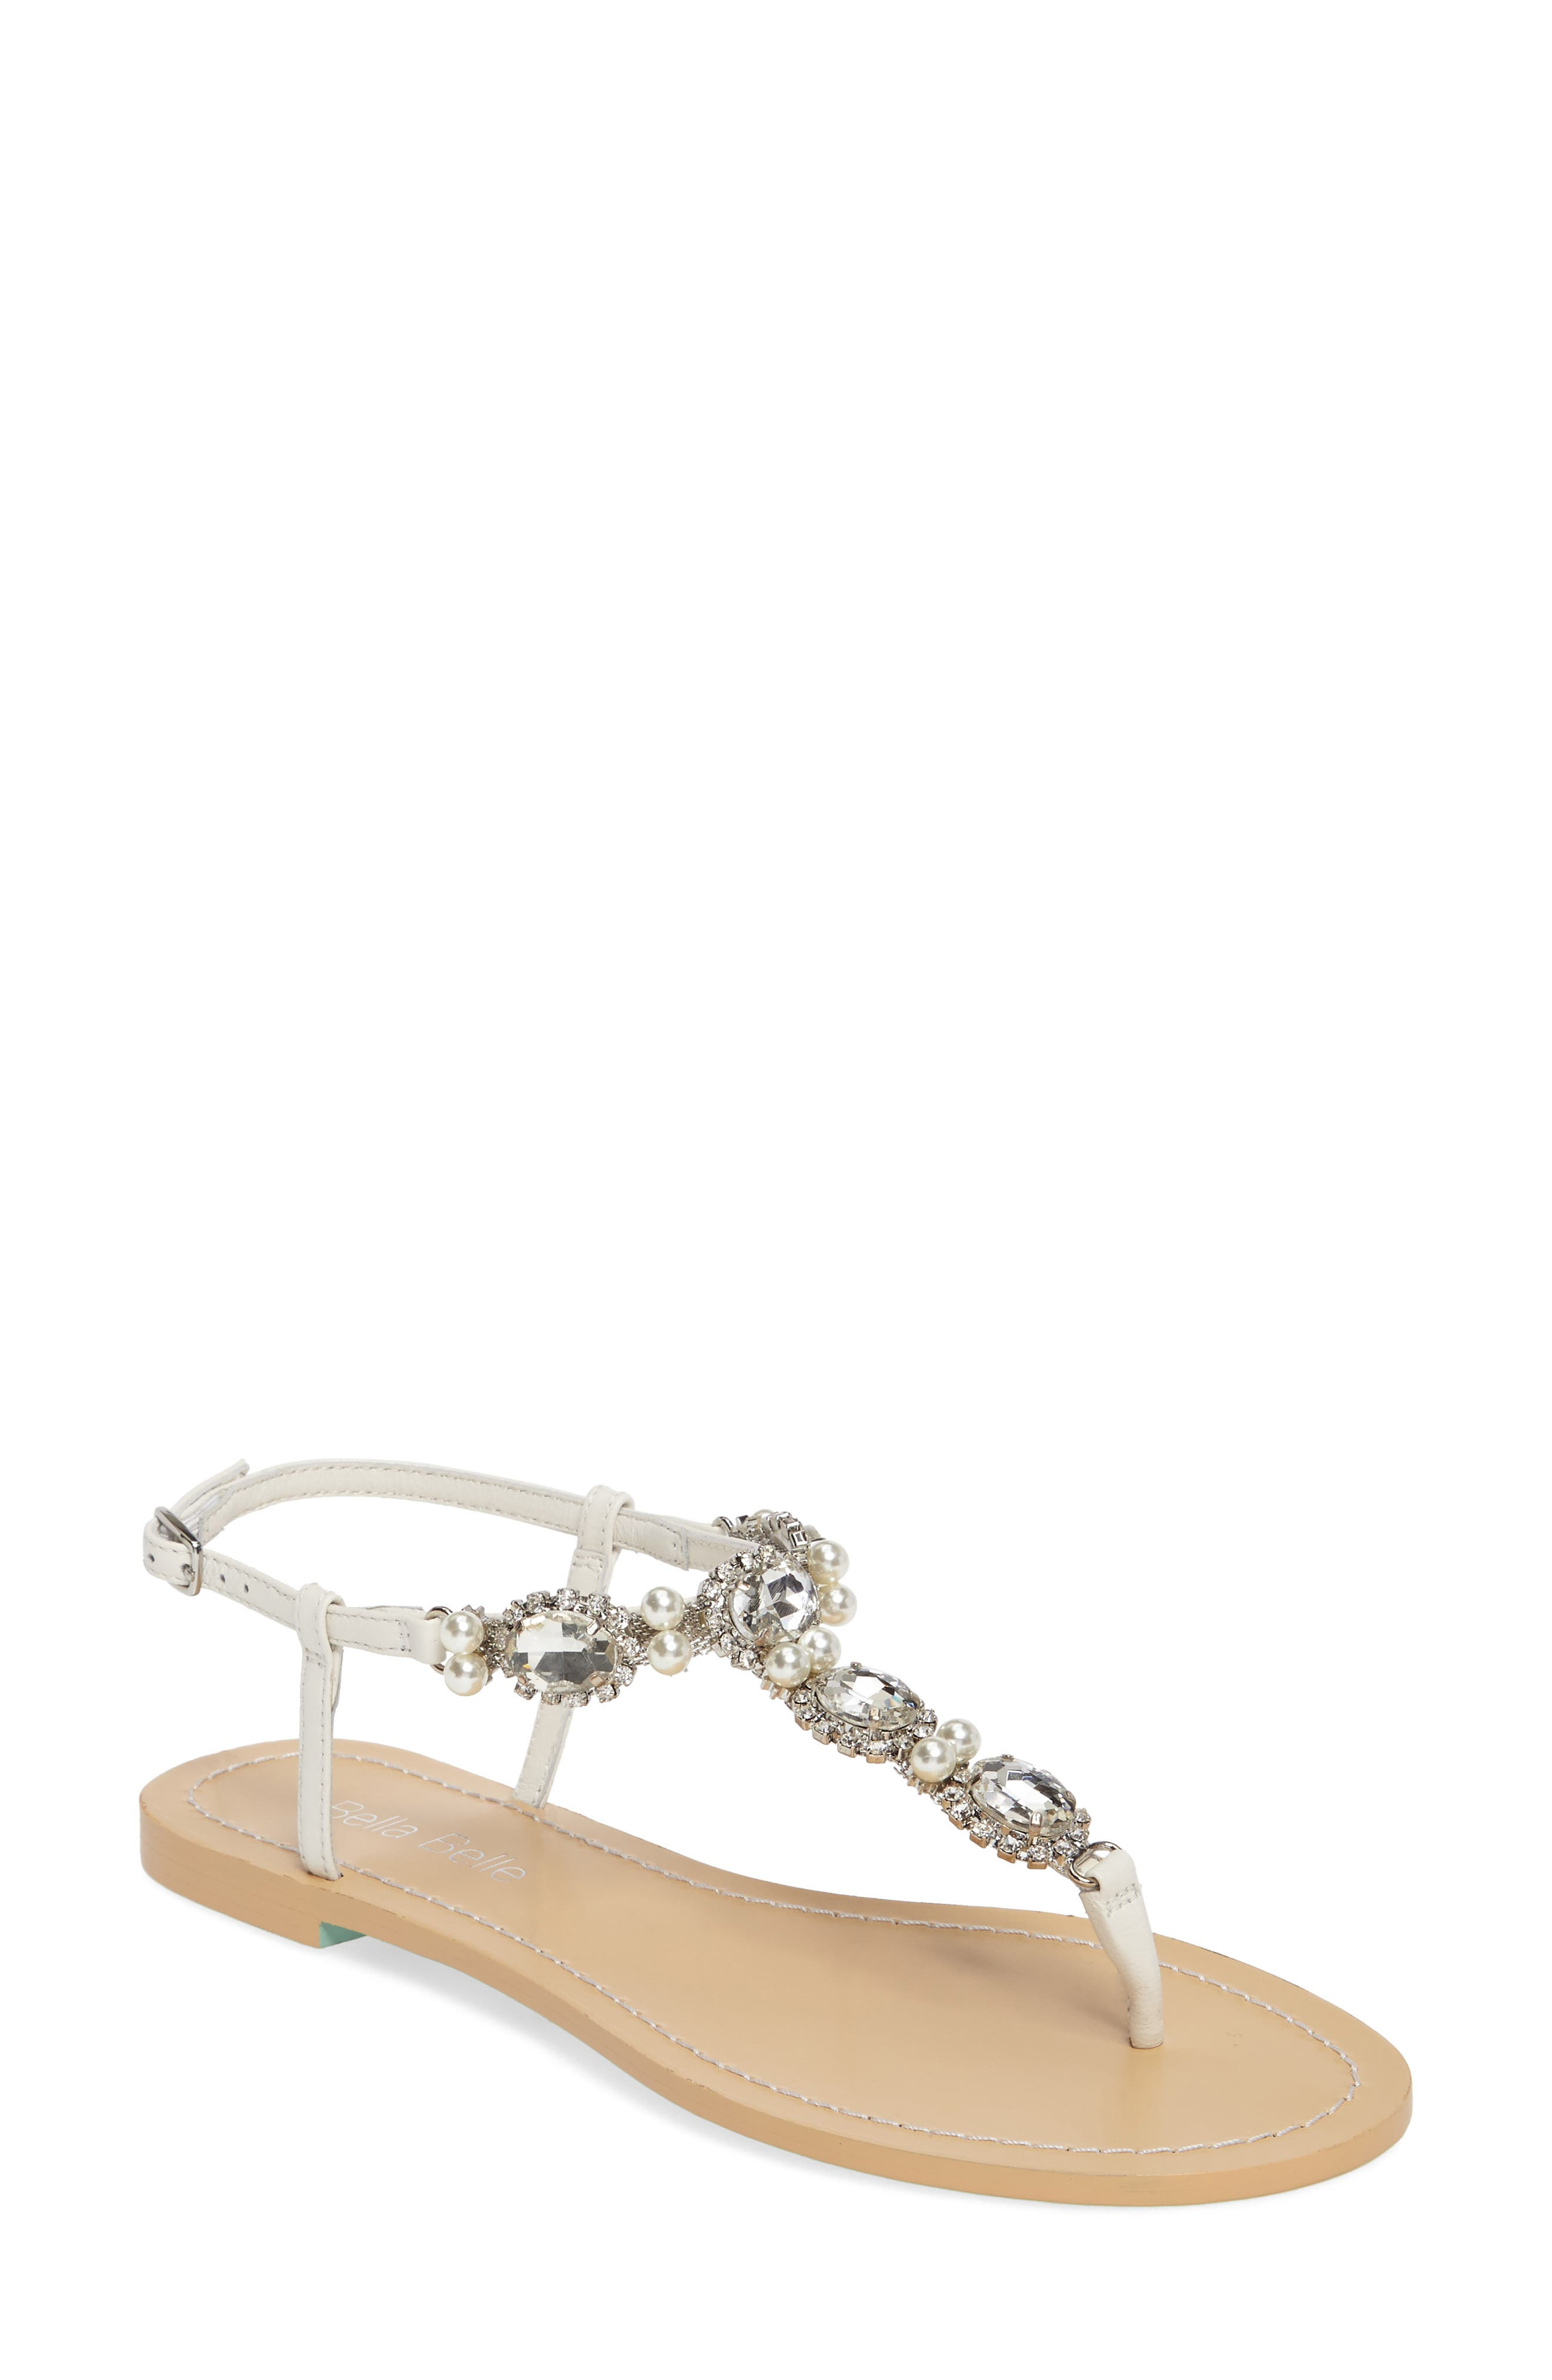 Hera Embellished T-Strap Sandal,                             Main thumbnail 1, color,                             OFF WHITE LEATHER